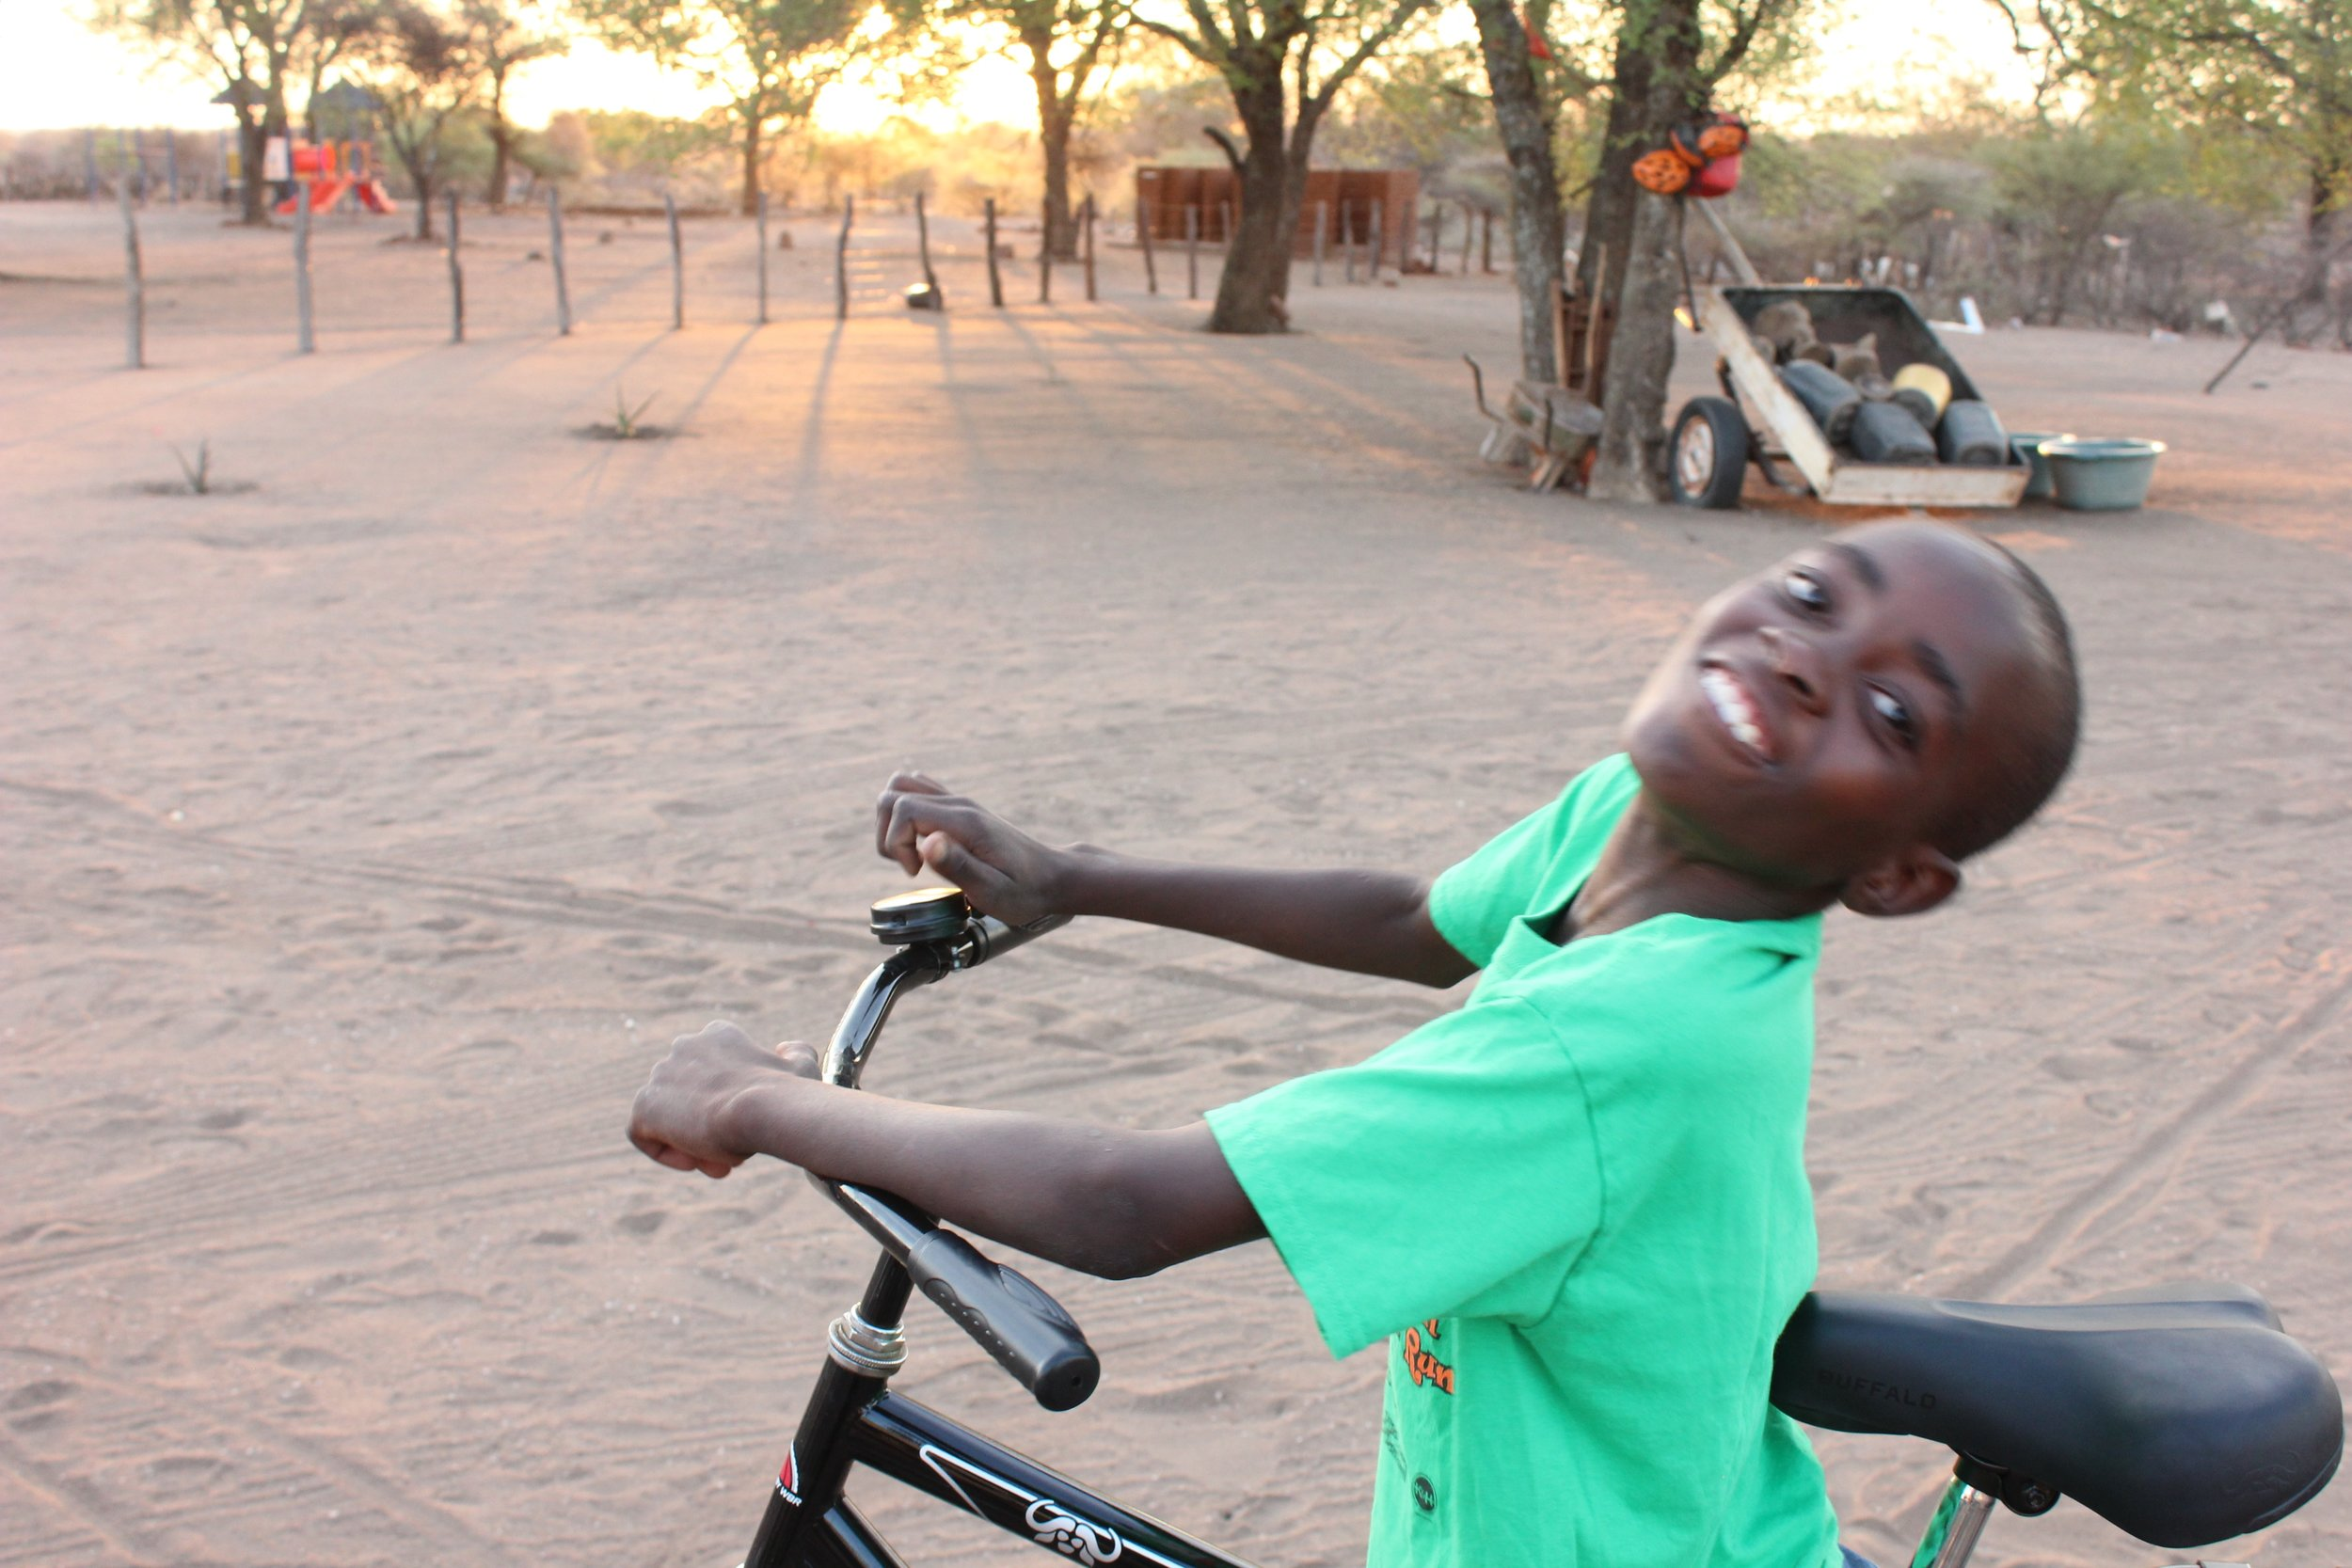 Tsepo on his new bike!